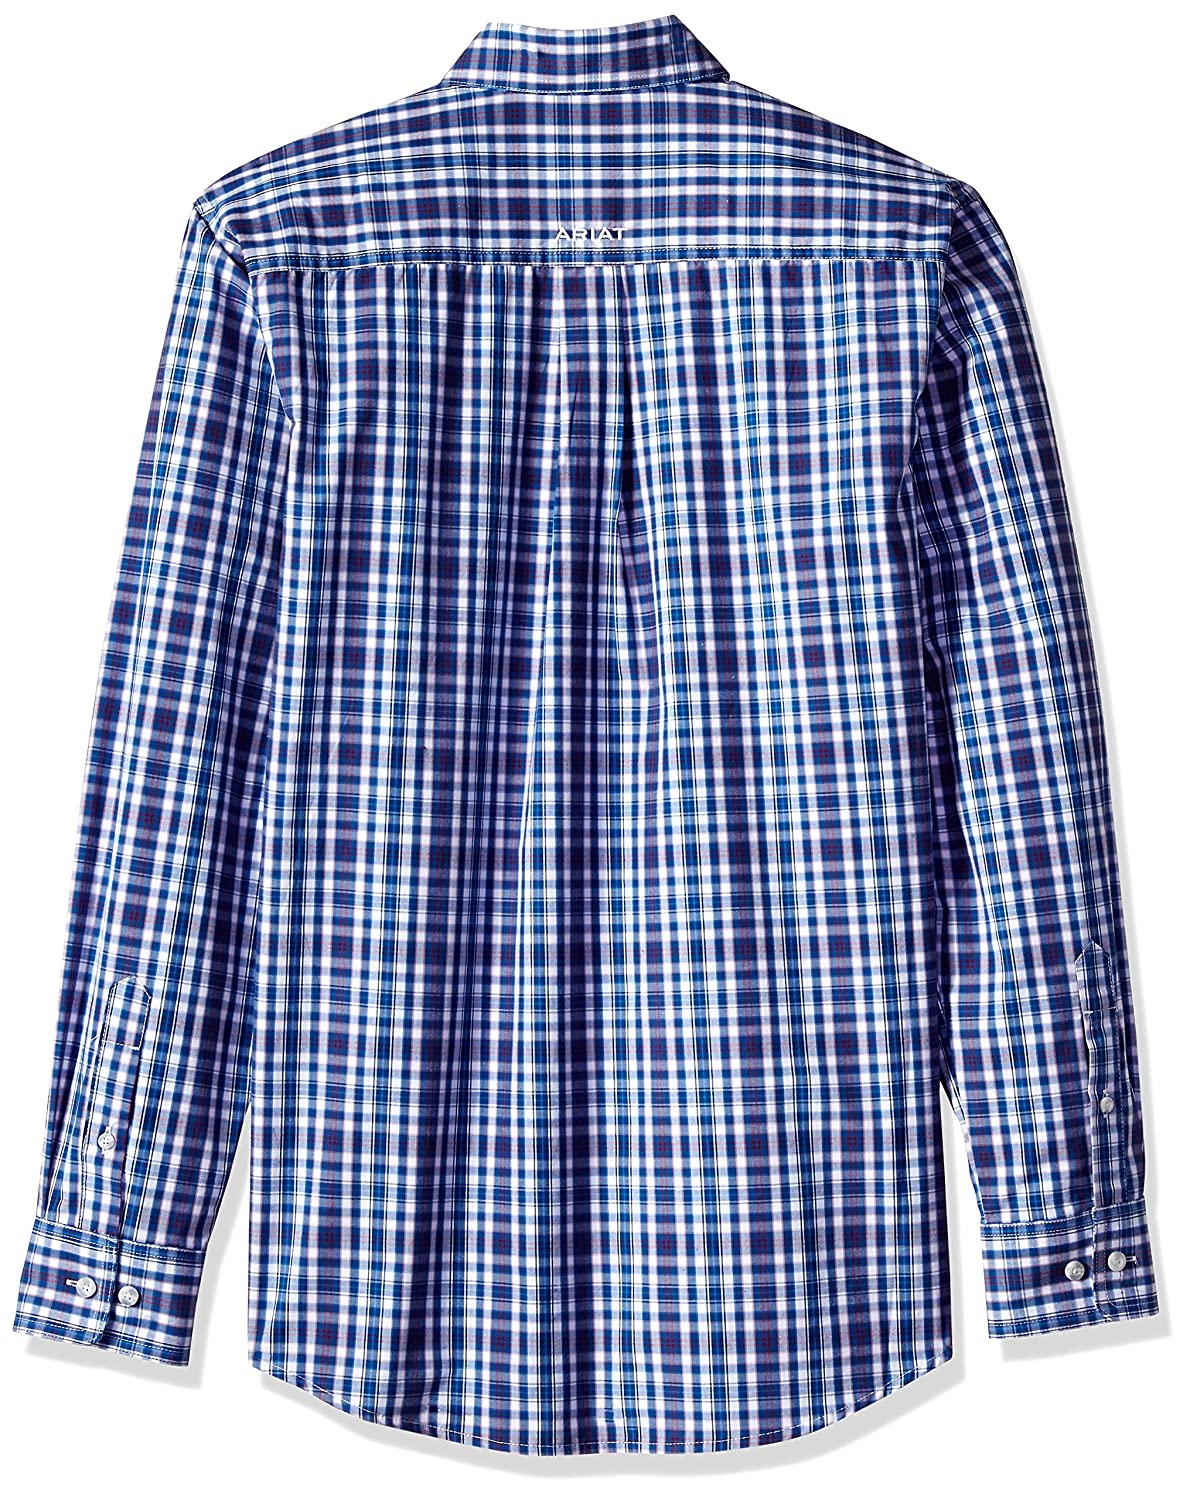 LT Darius Multi Colored Ariat Mens Fitted Long Sleeve Button Down Shirt-Pro Series